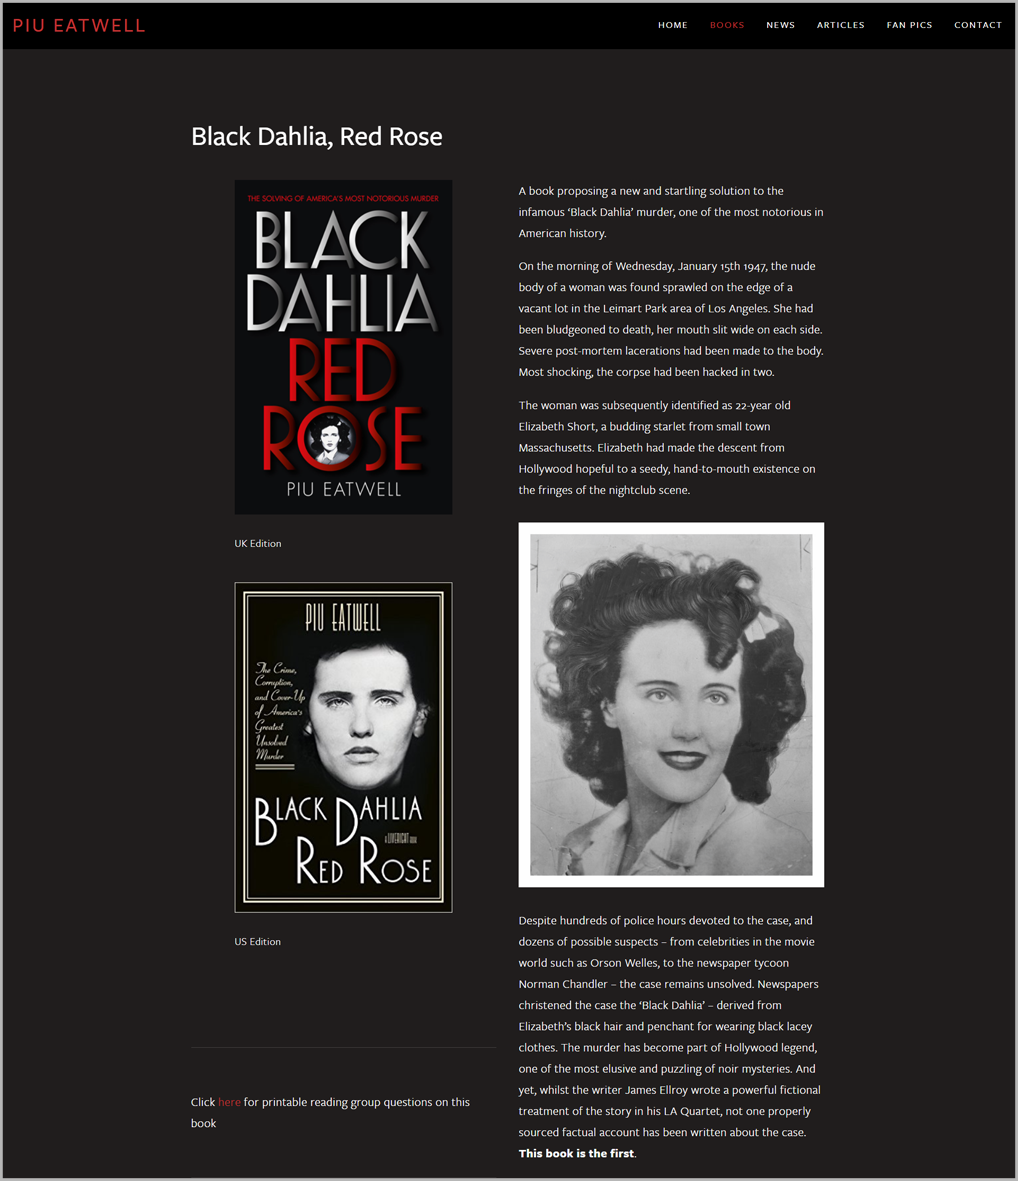 black dahlia website.png